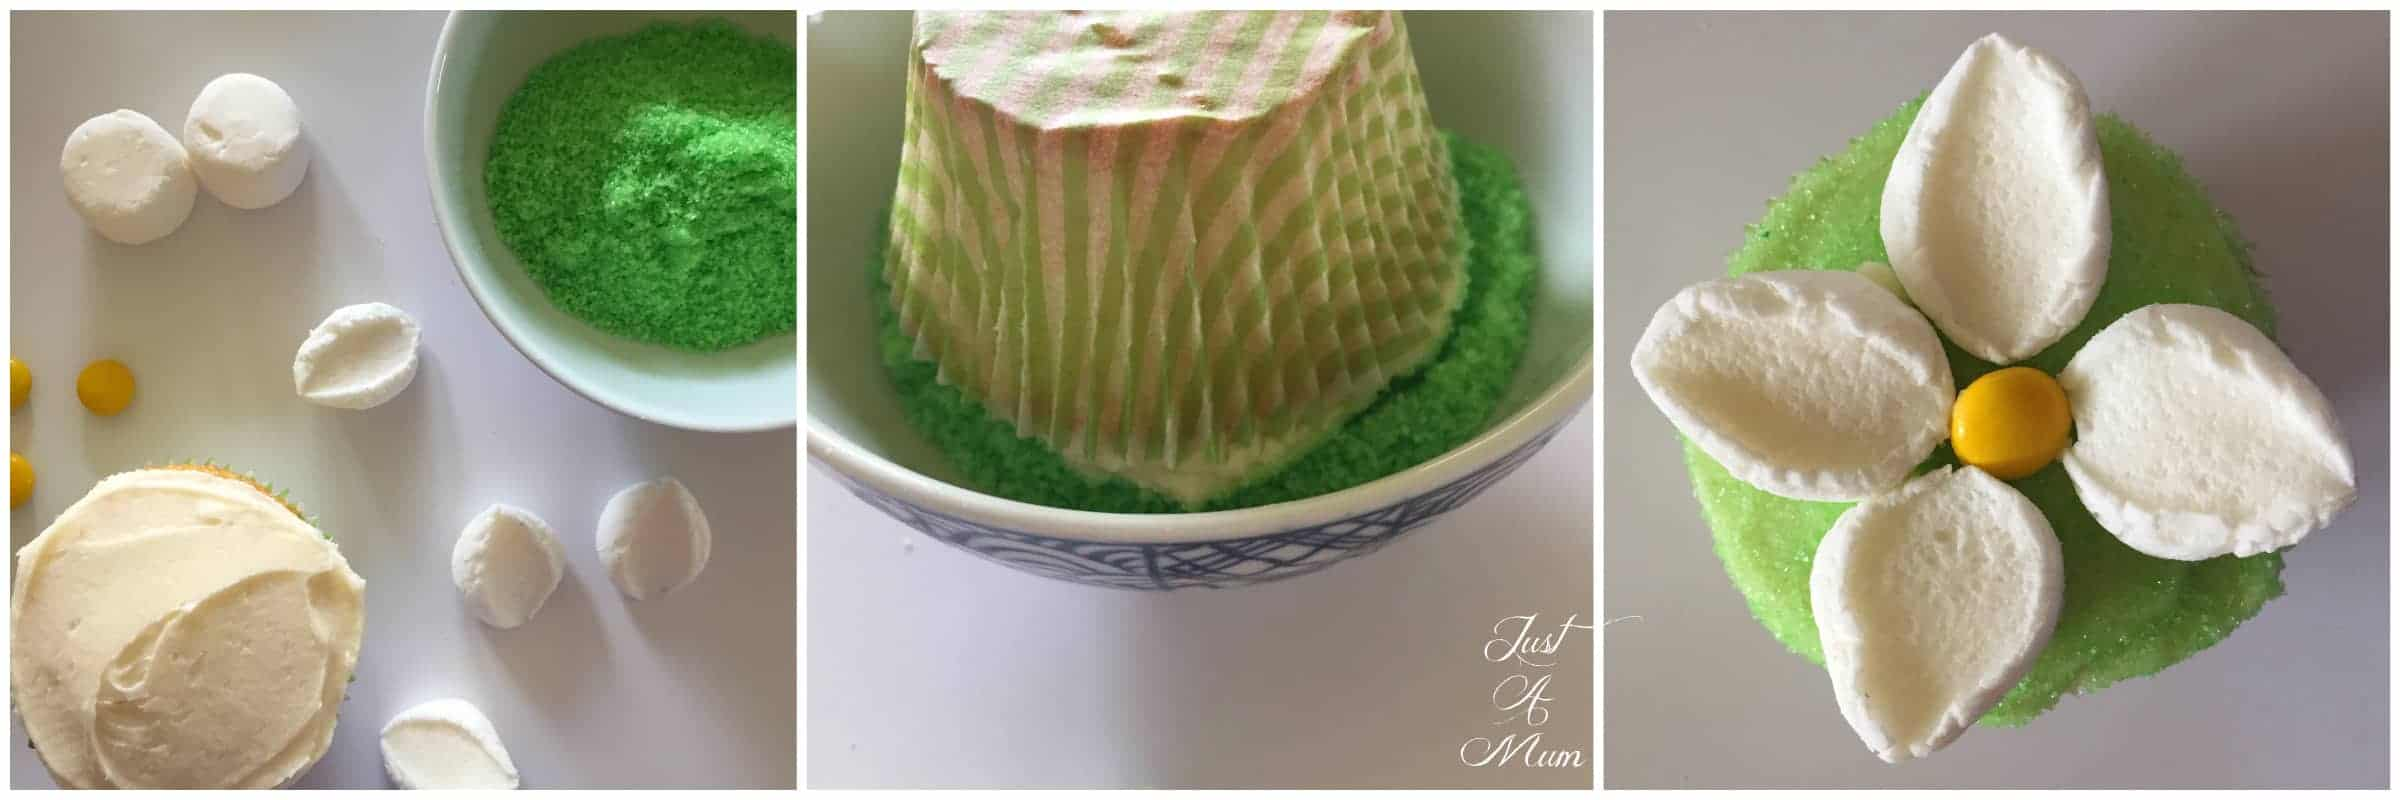 Just A Mum - Chelsea Sugar Cupcakes